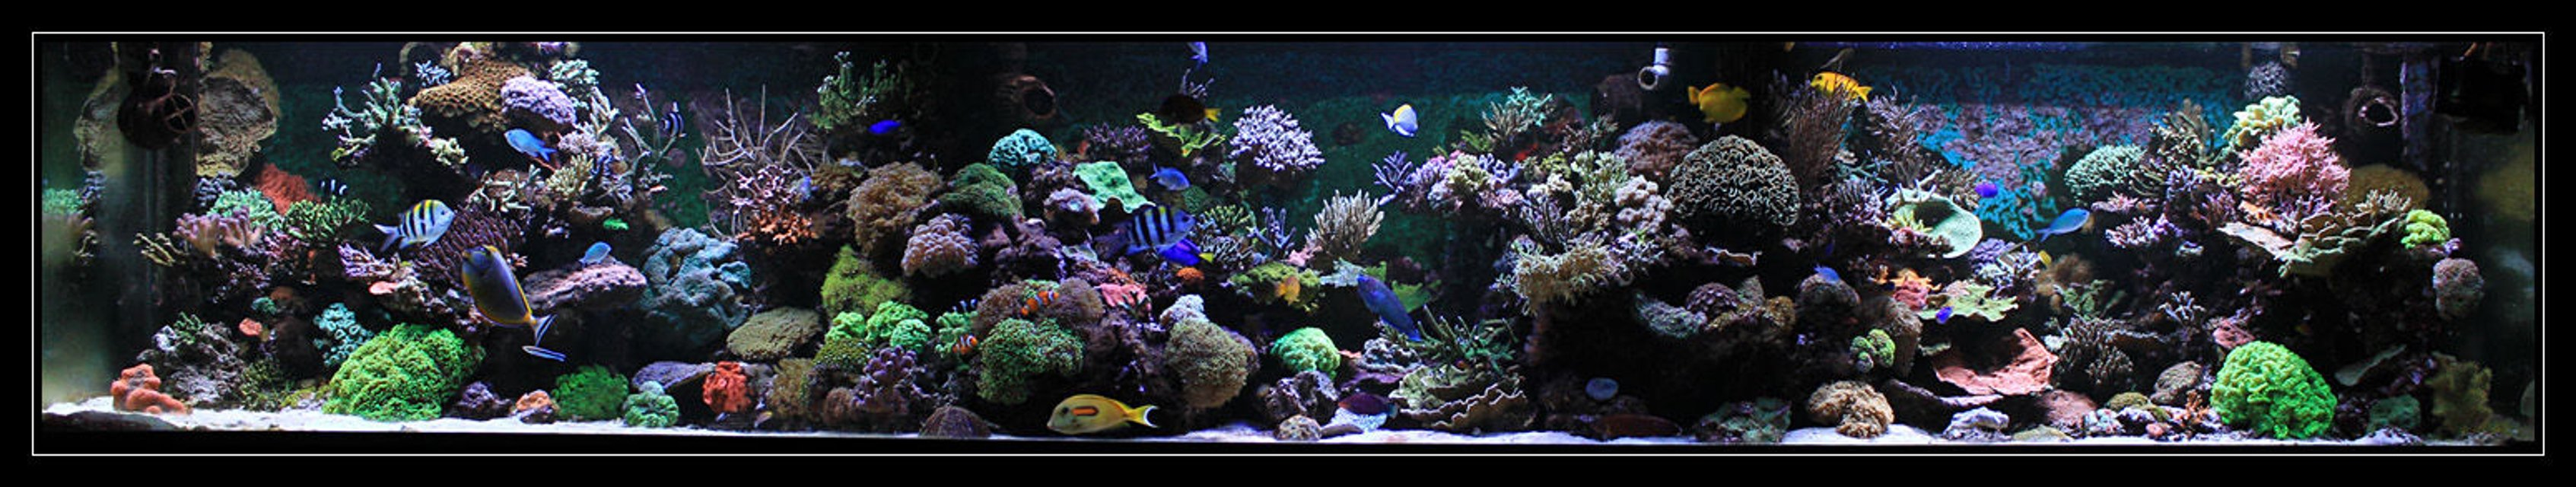 Rated #13: 554 Gallons Reef Tank - my reef tank